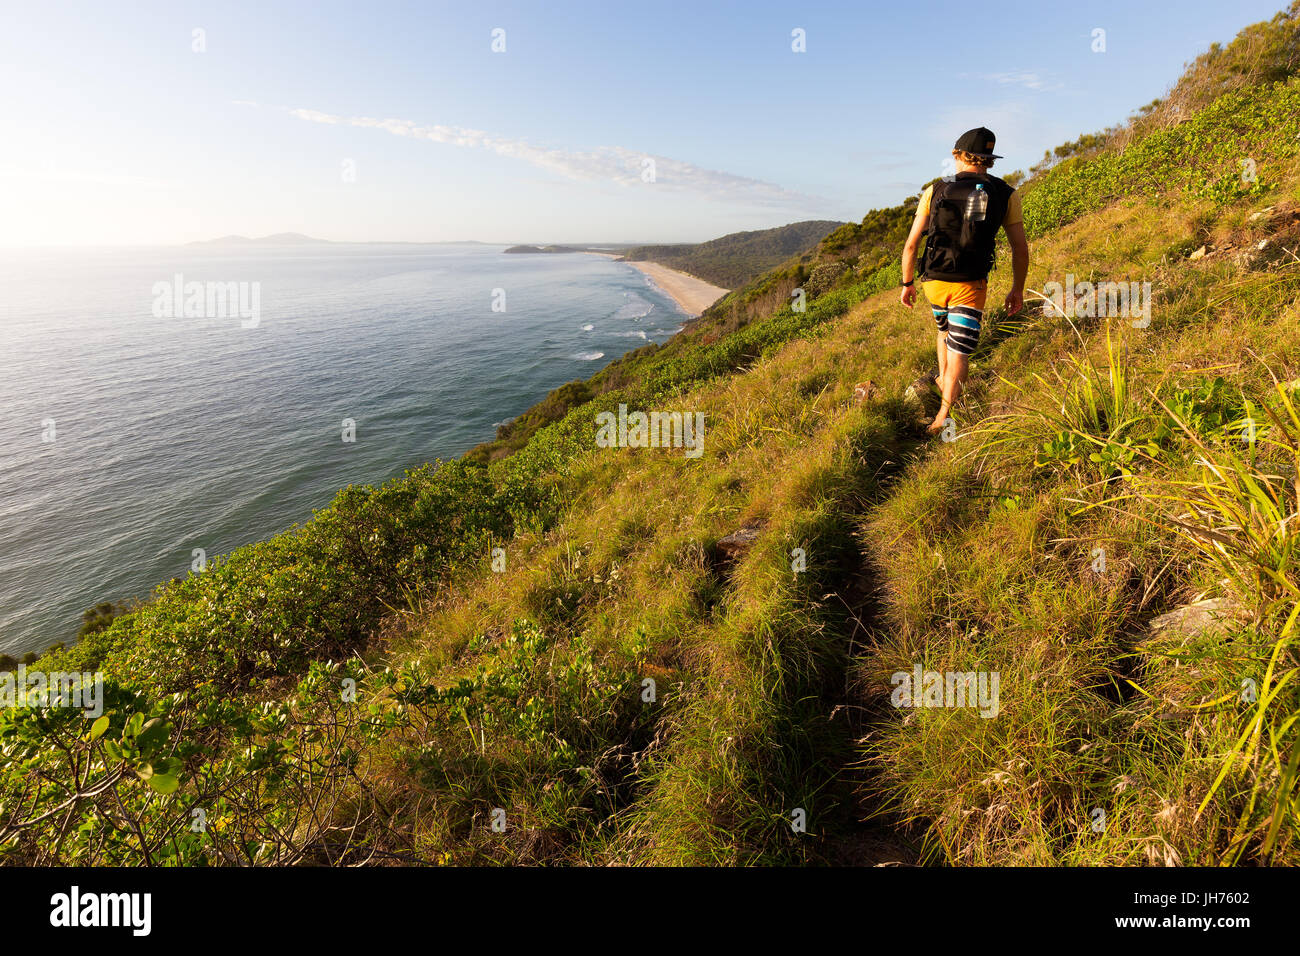 A hiker looking at a beautiful coastline view over the sea during a bright summer morning as he walks on a grassy - Stock Image